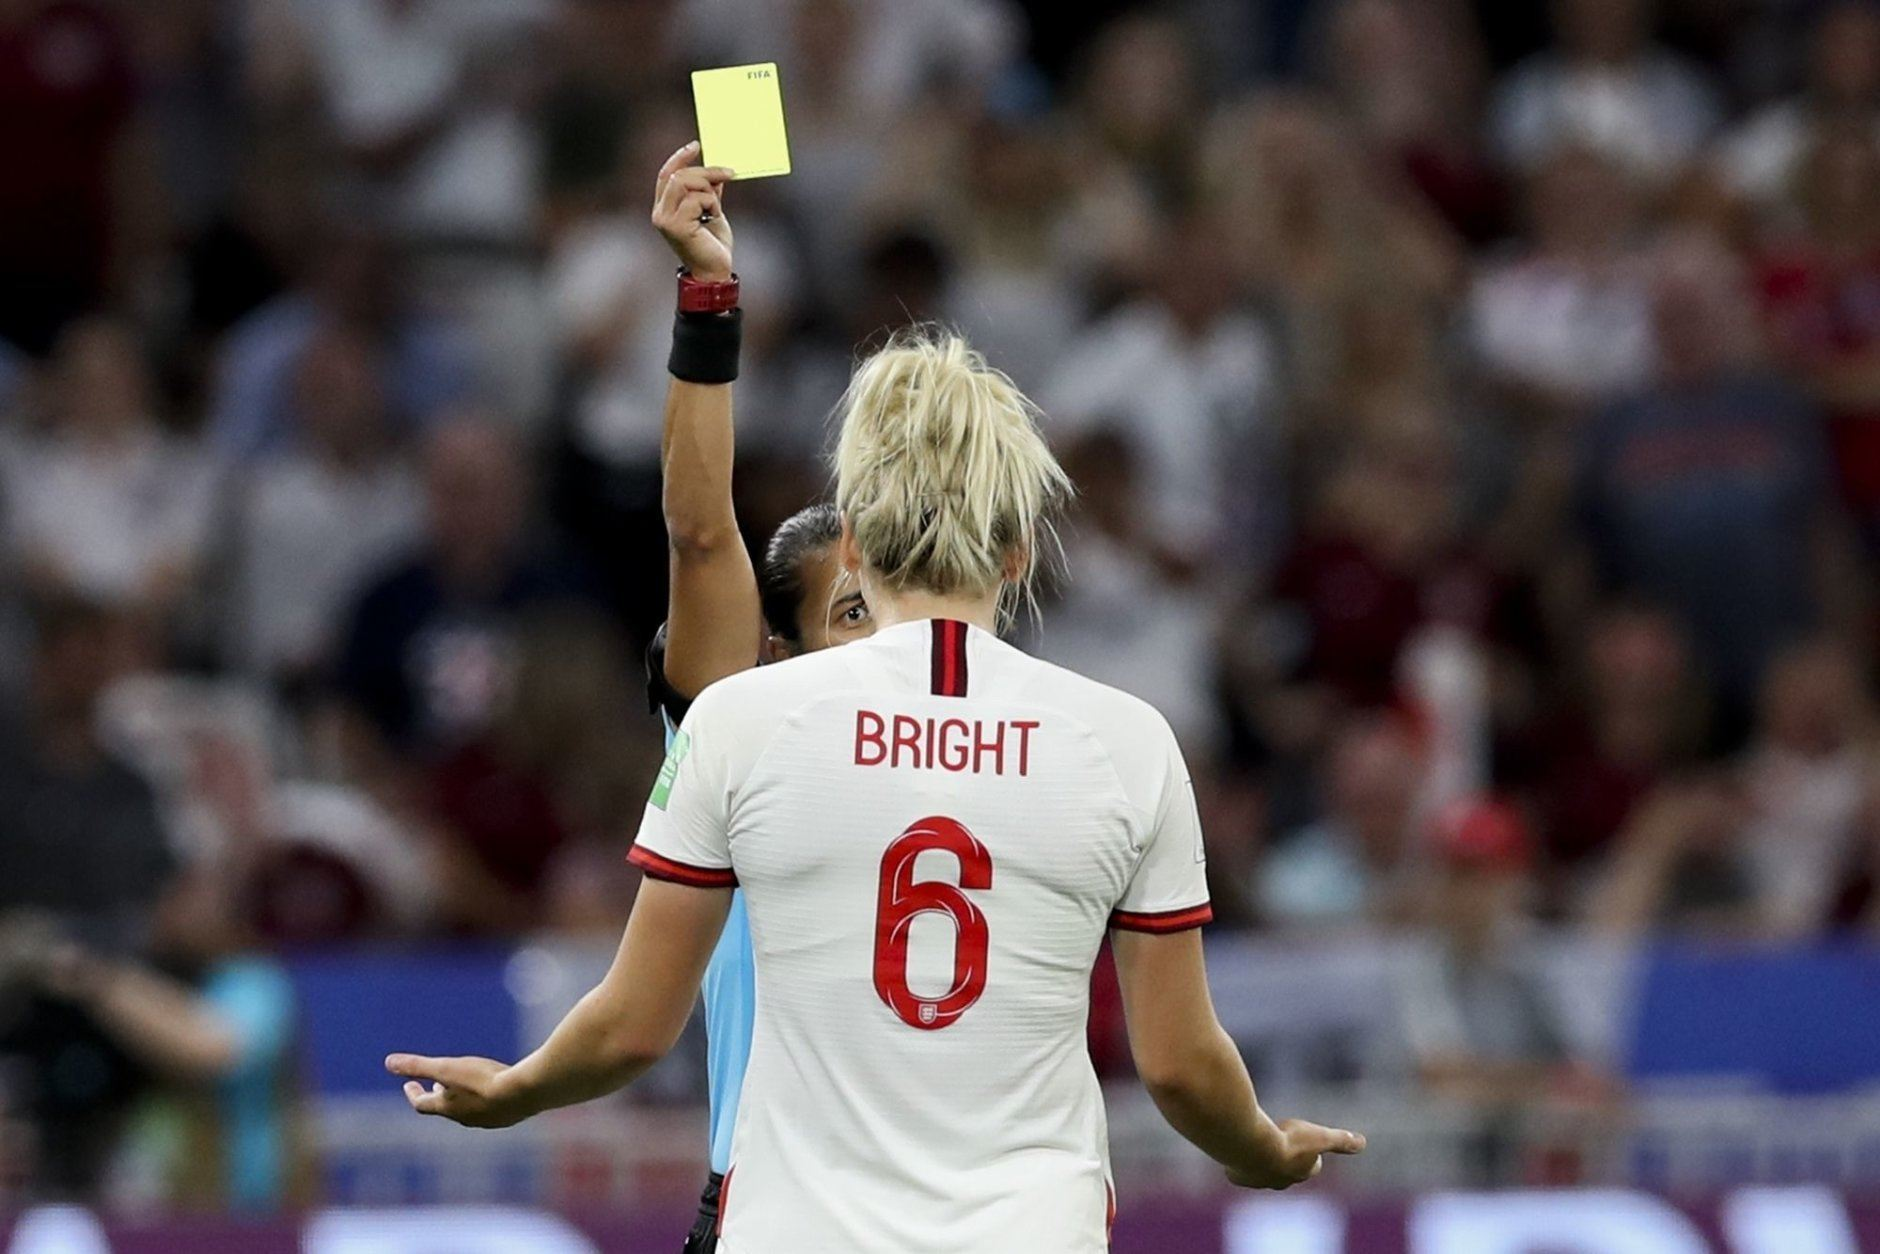 Brazilian referee Edina Alves Batista shows a second yellow card to England's Millie Bright during the Women's World Cup semifinal soccer match between England and the United States, at the Stade de Lyon outside Lyon, France, Tuesday, July 2, 2019. (AP Photo/Francisco Seco)